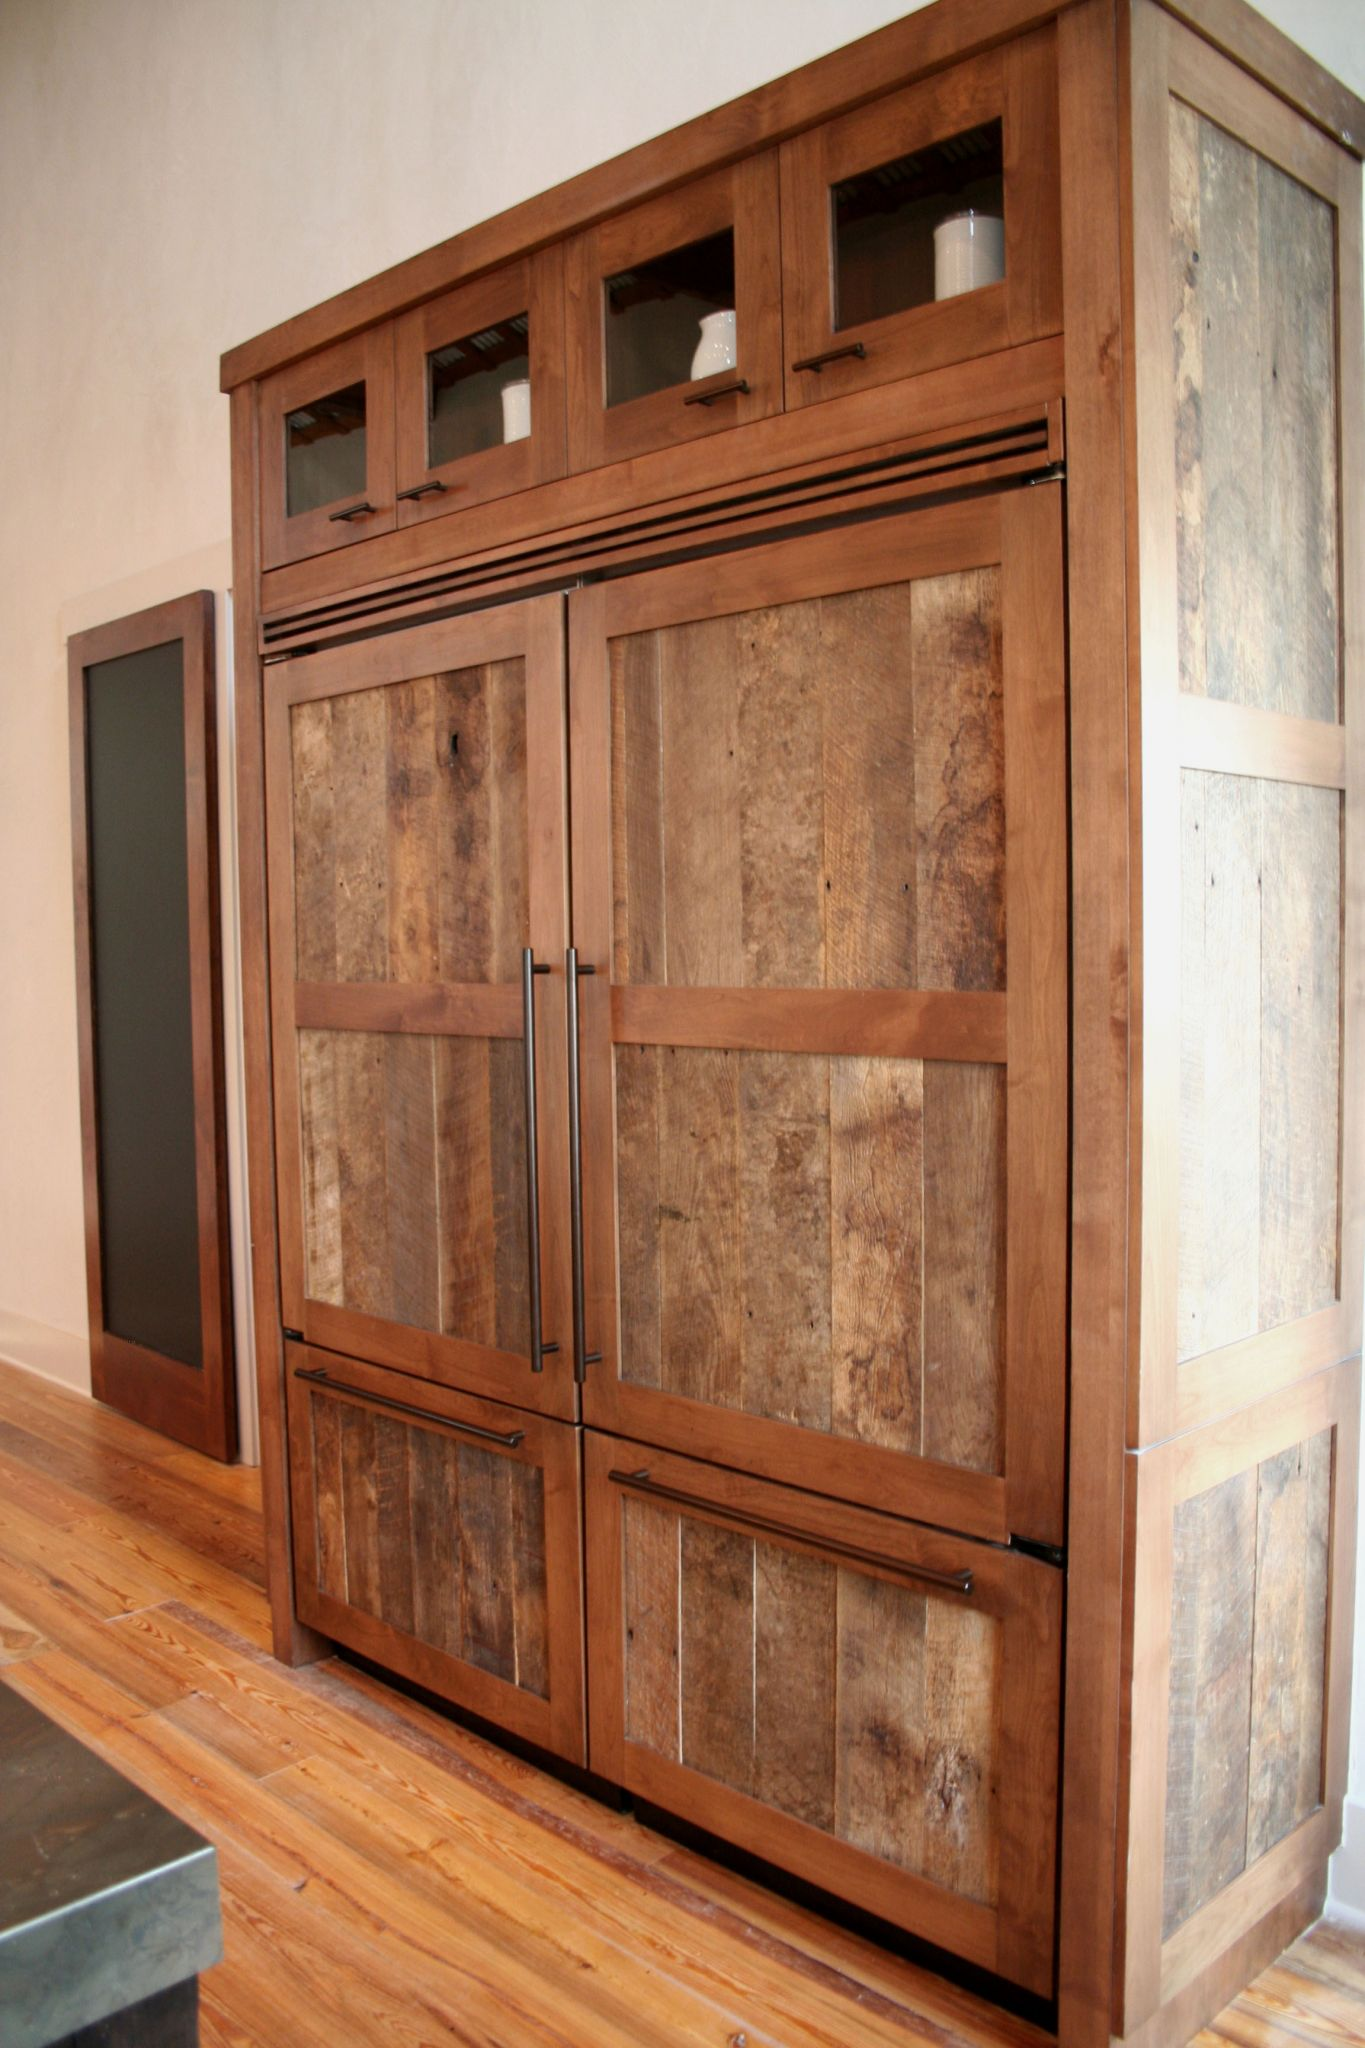 Parade Kitchen denver custom cabinetry - Integrating Reclaimed Wood In Your Remodel BKC Kitchen And Bath